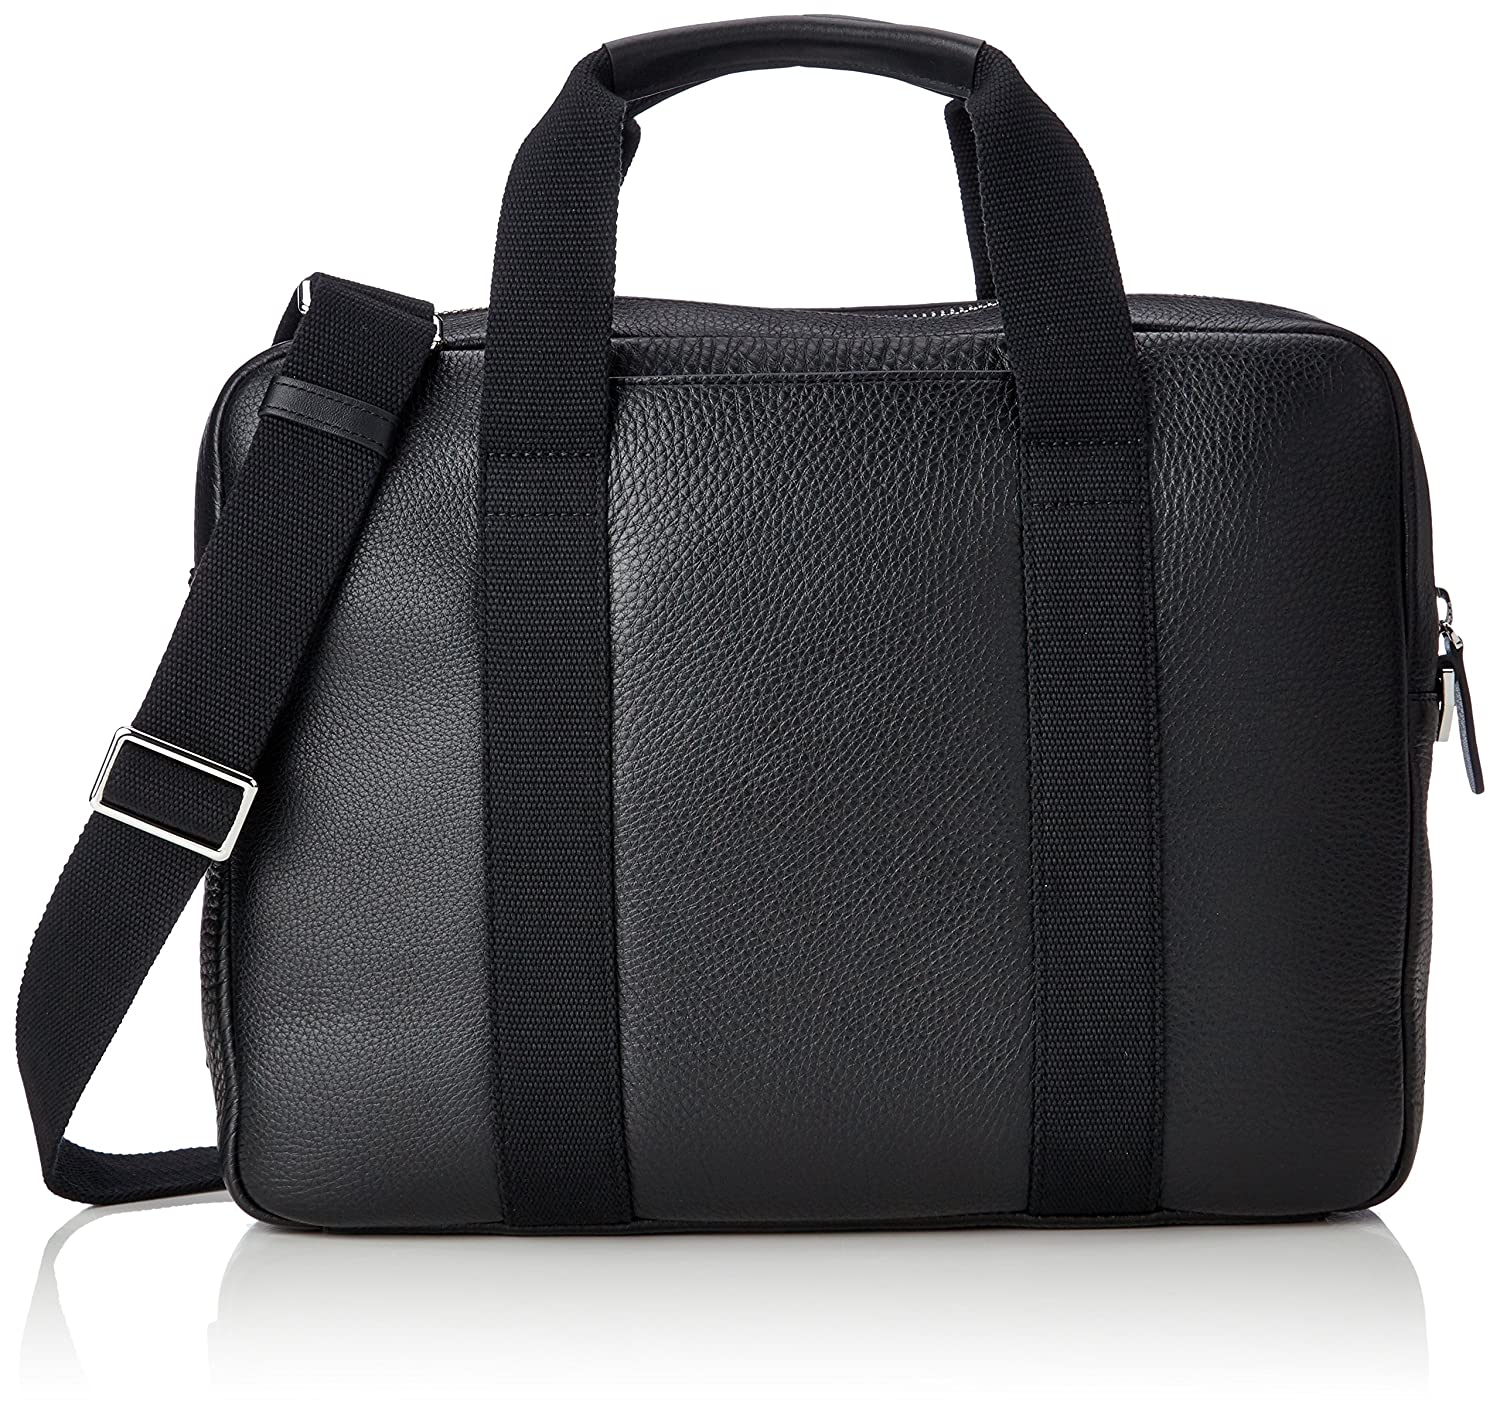 [エコー] Eday L Laptop Bag EDAY L 9105036 B01IWWFXXGブラック